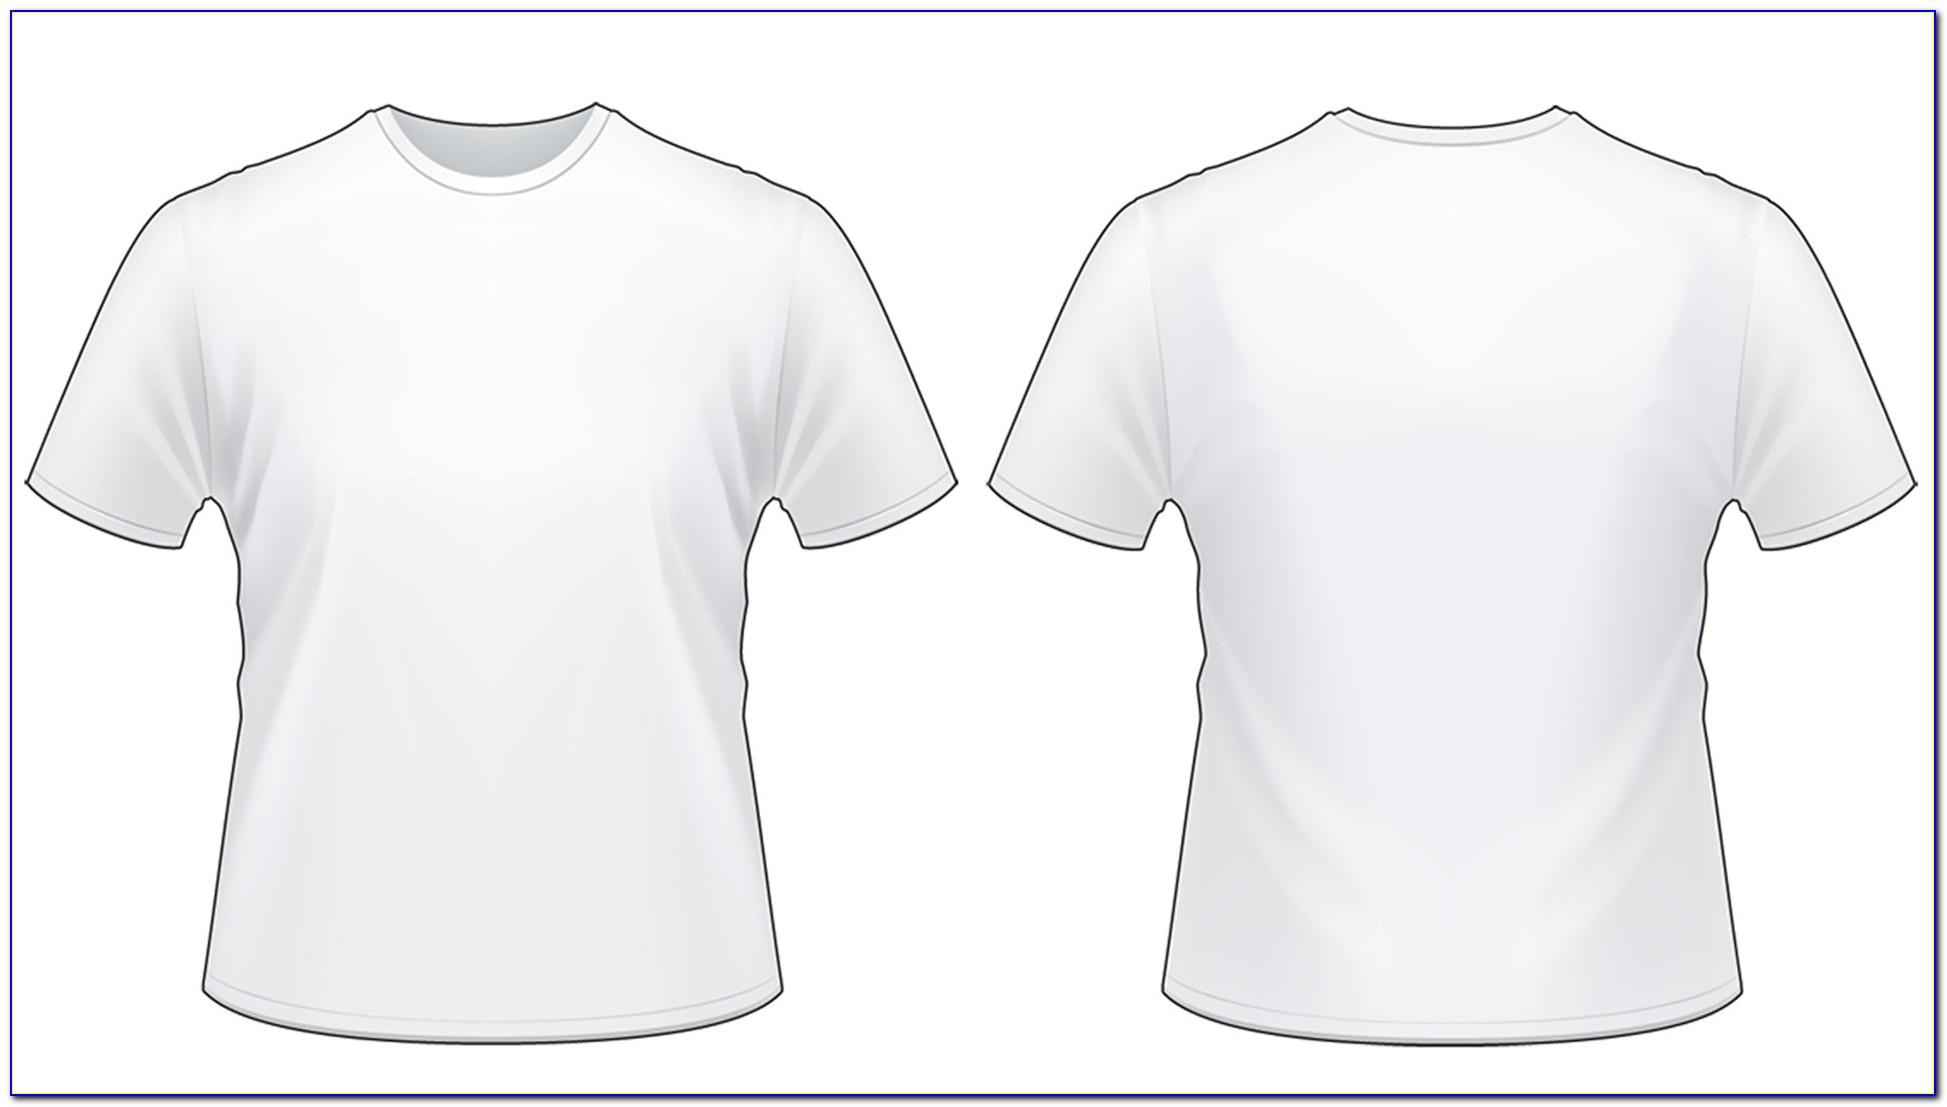 T Shirt Design Template Adobe Illustrator